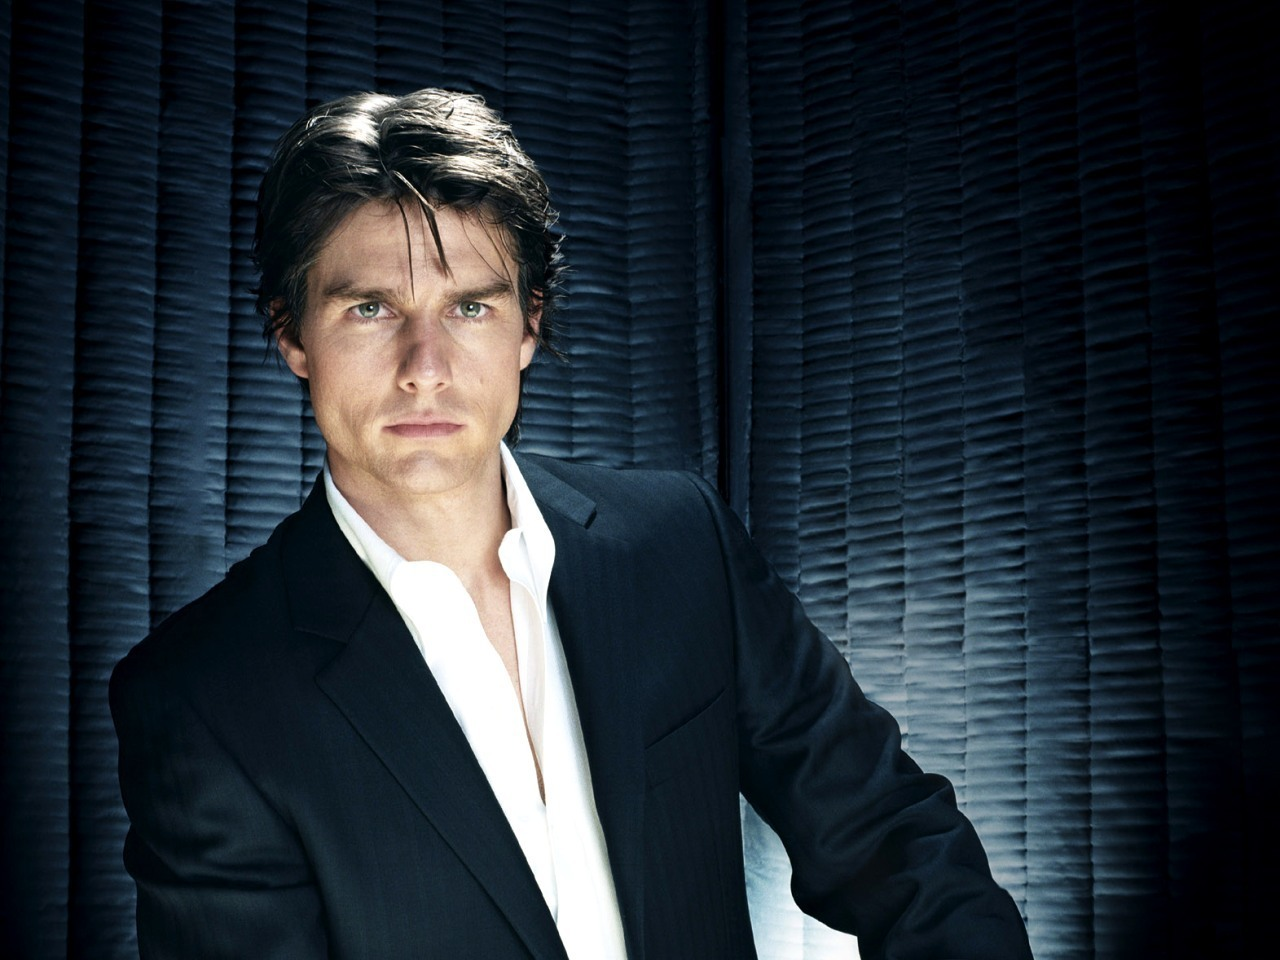 tom-cruise-wallpapers-hd-6